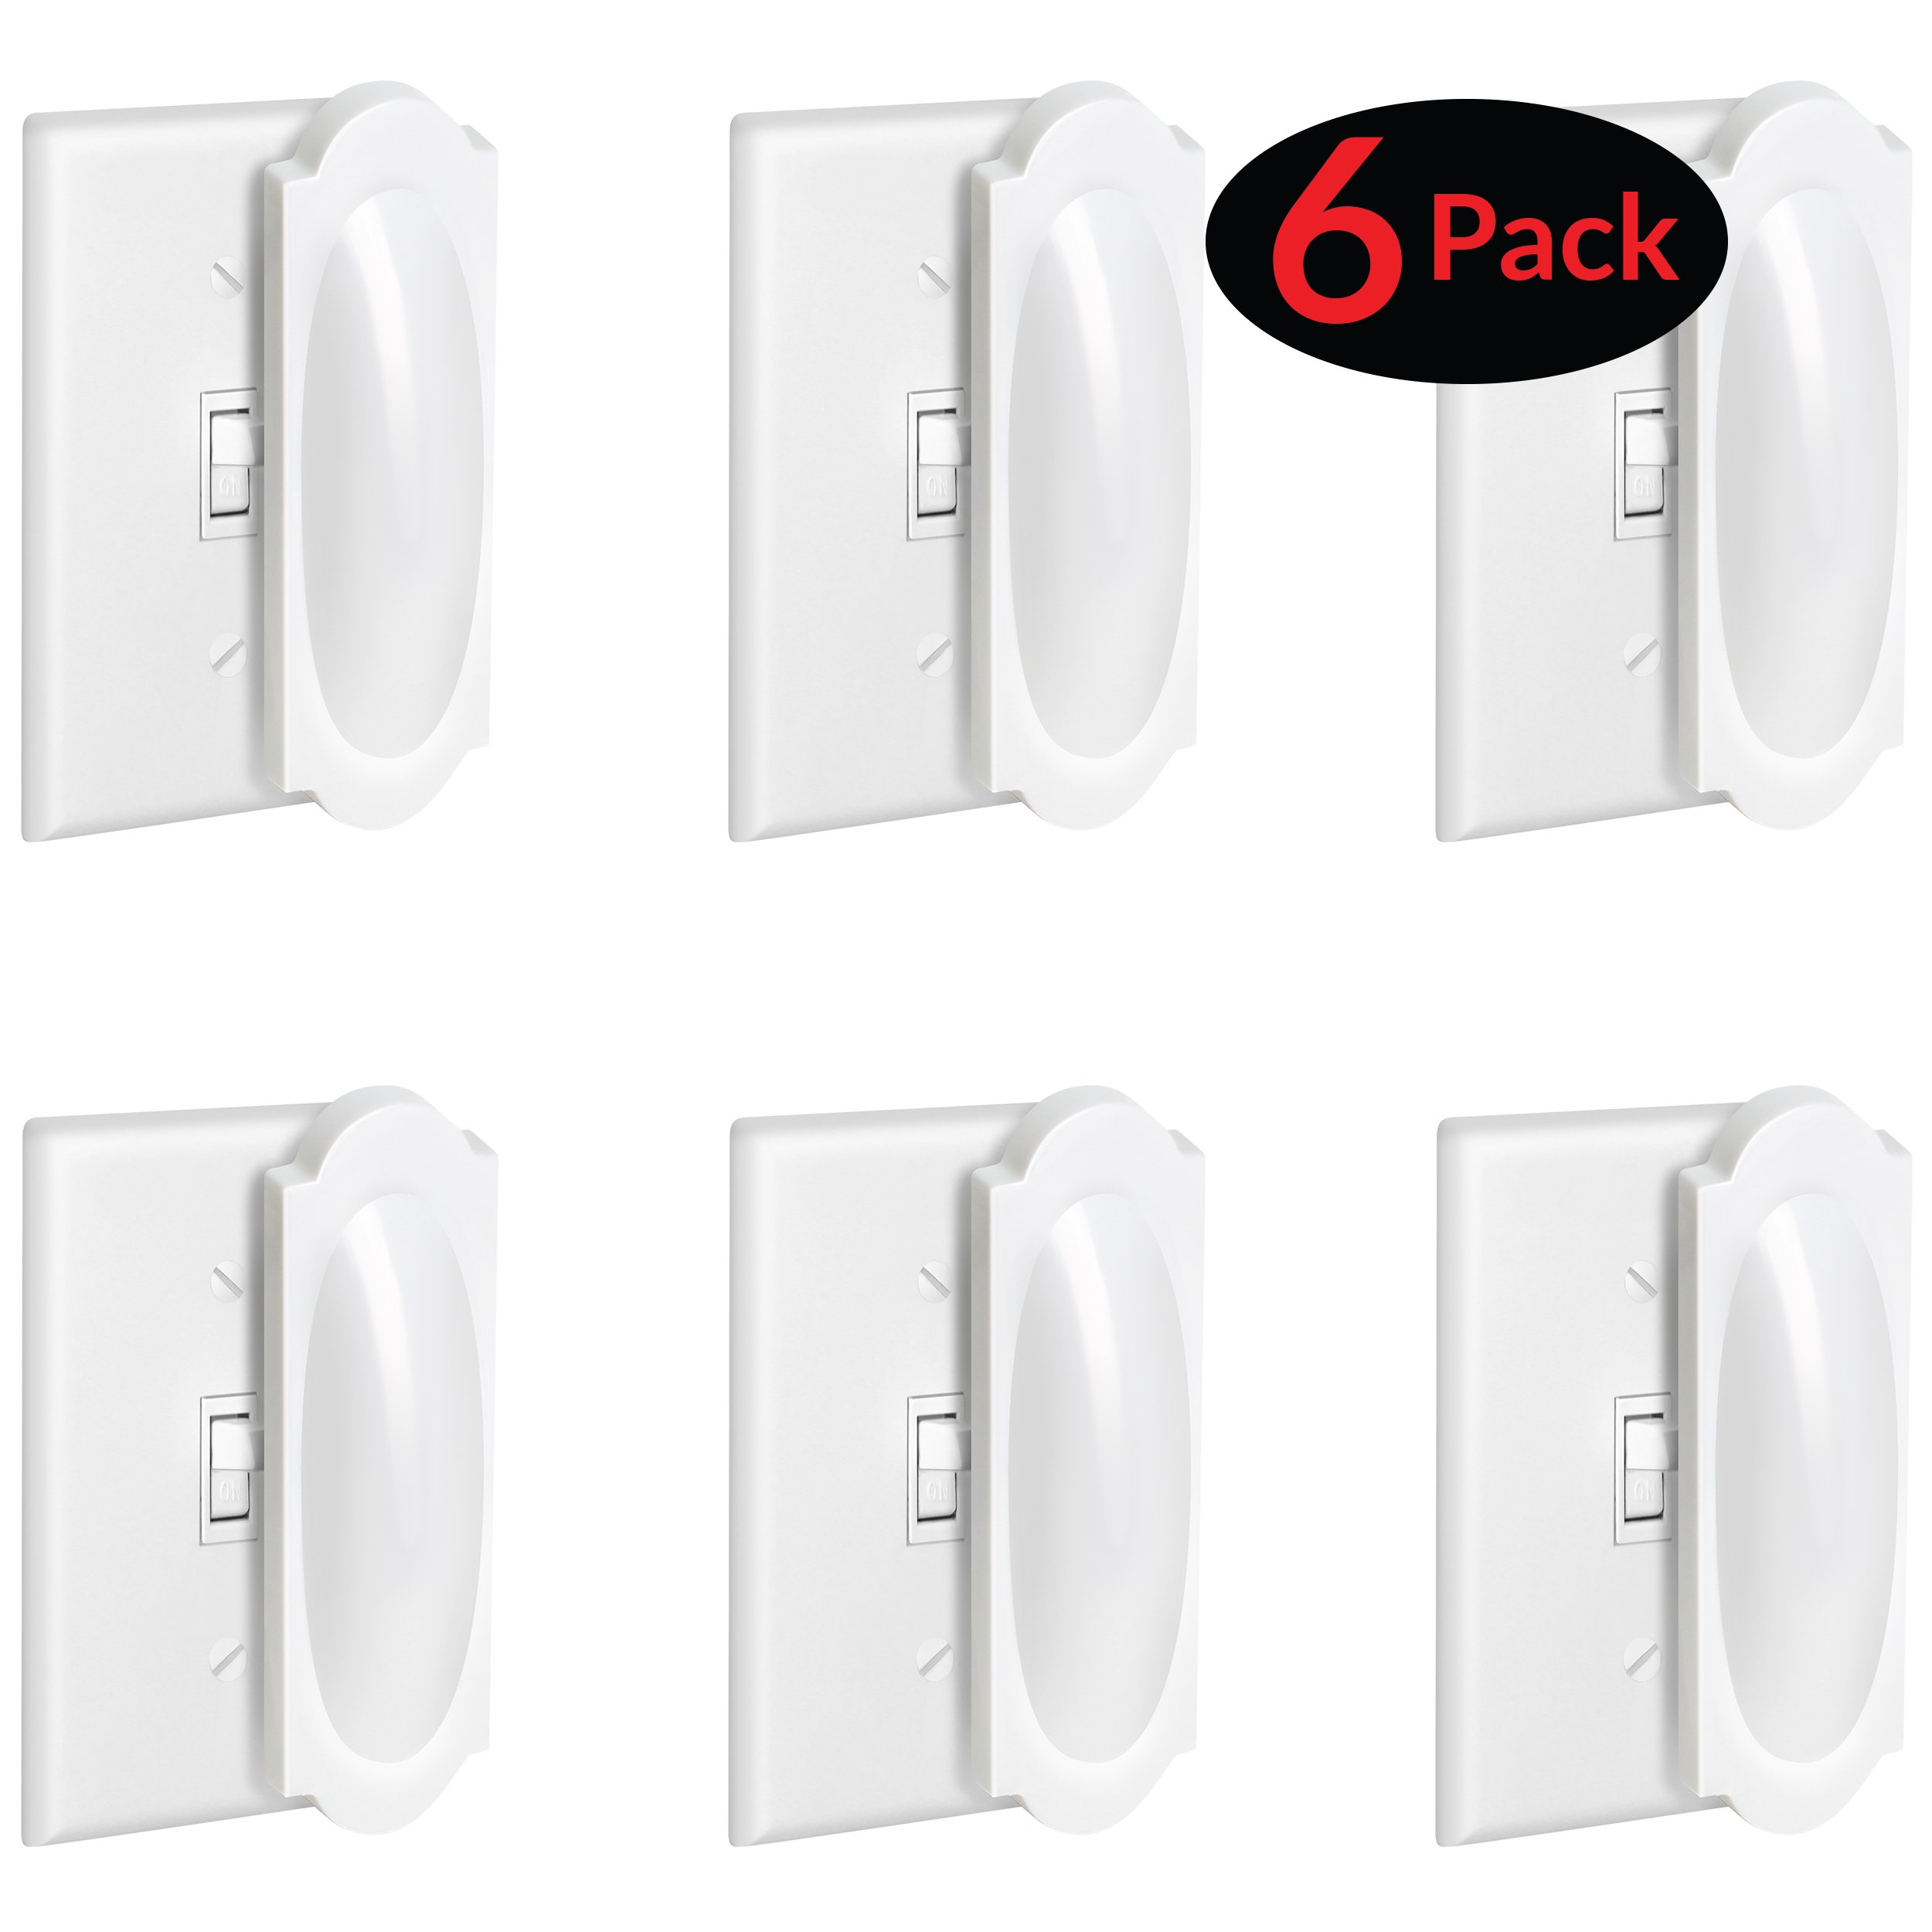 Light Switch Guard (6 pack)